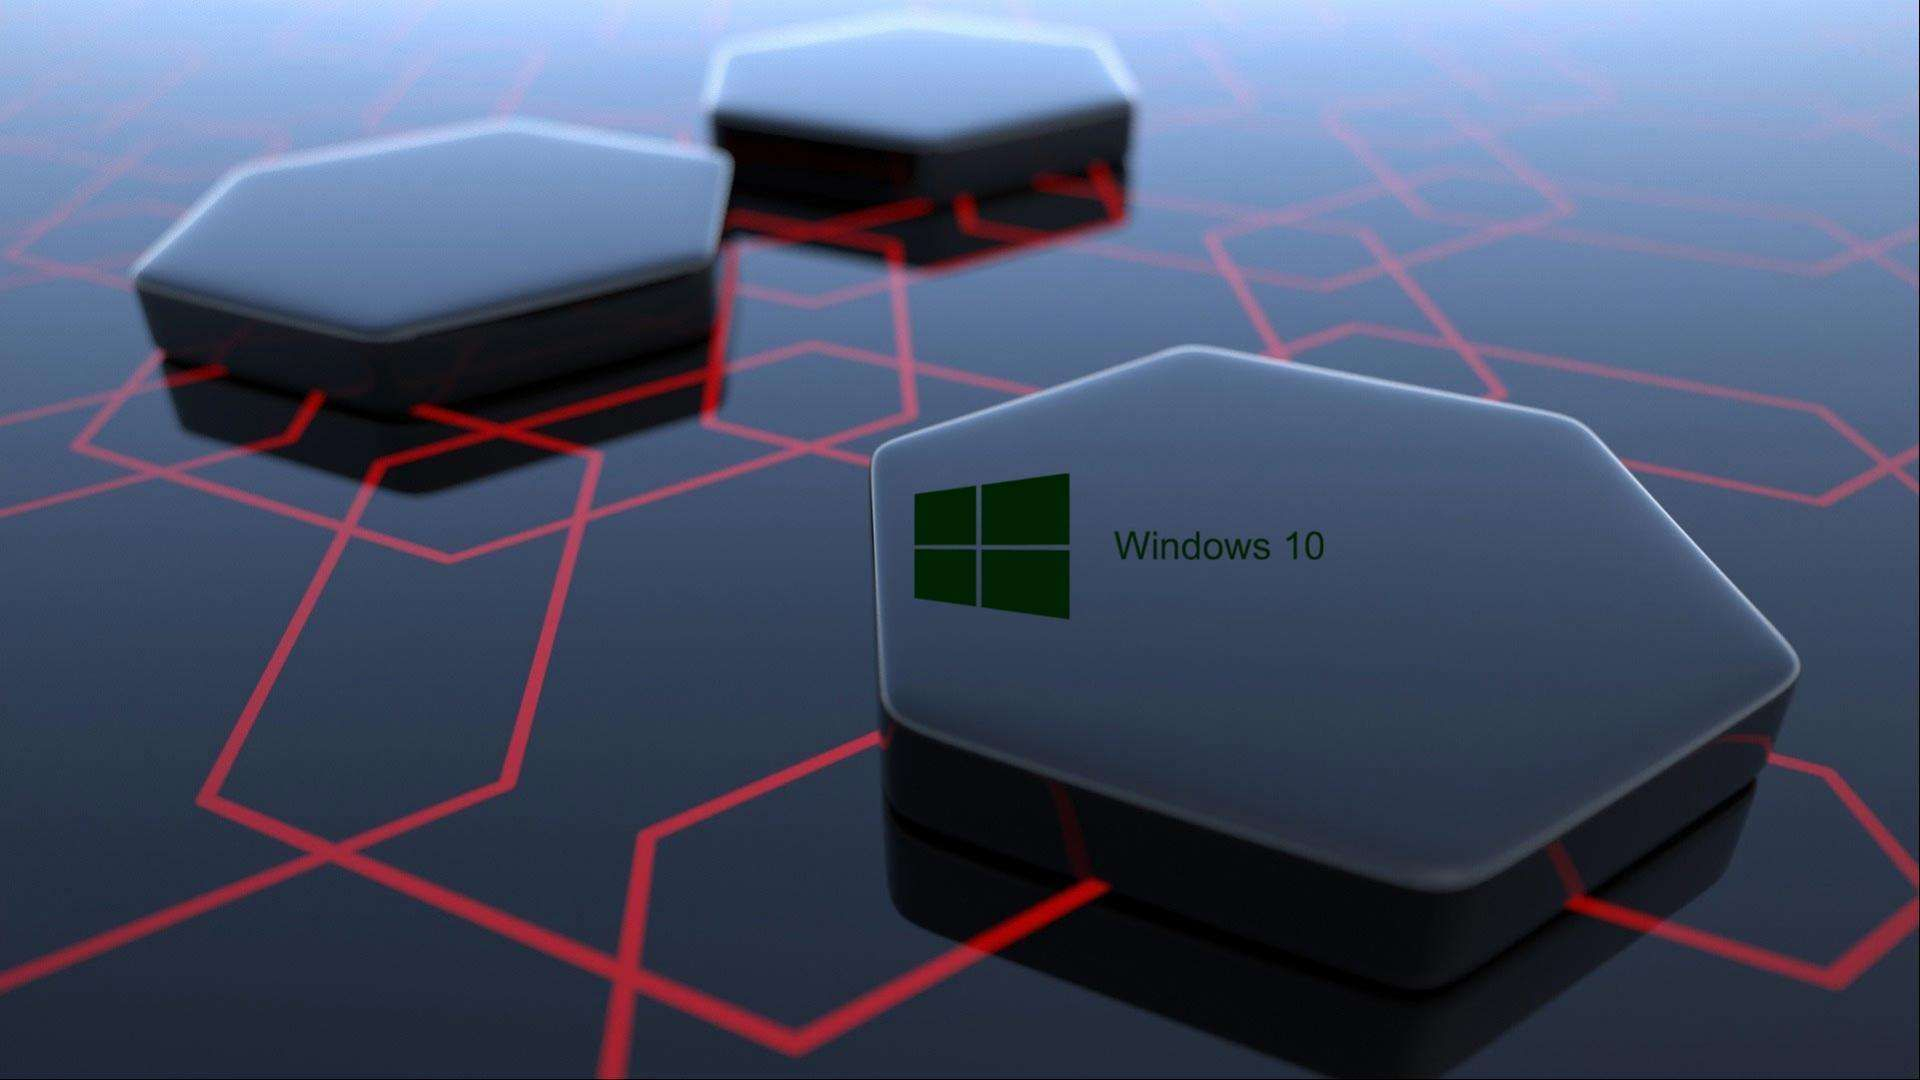 Windows 10 Wallpaper Hd 1080p In 2020 3d Wallpaper For Laptop Wallpaper Windows 10 Windows Wallpaper